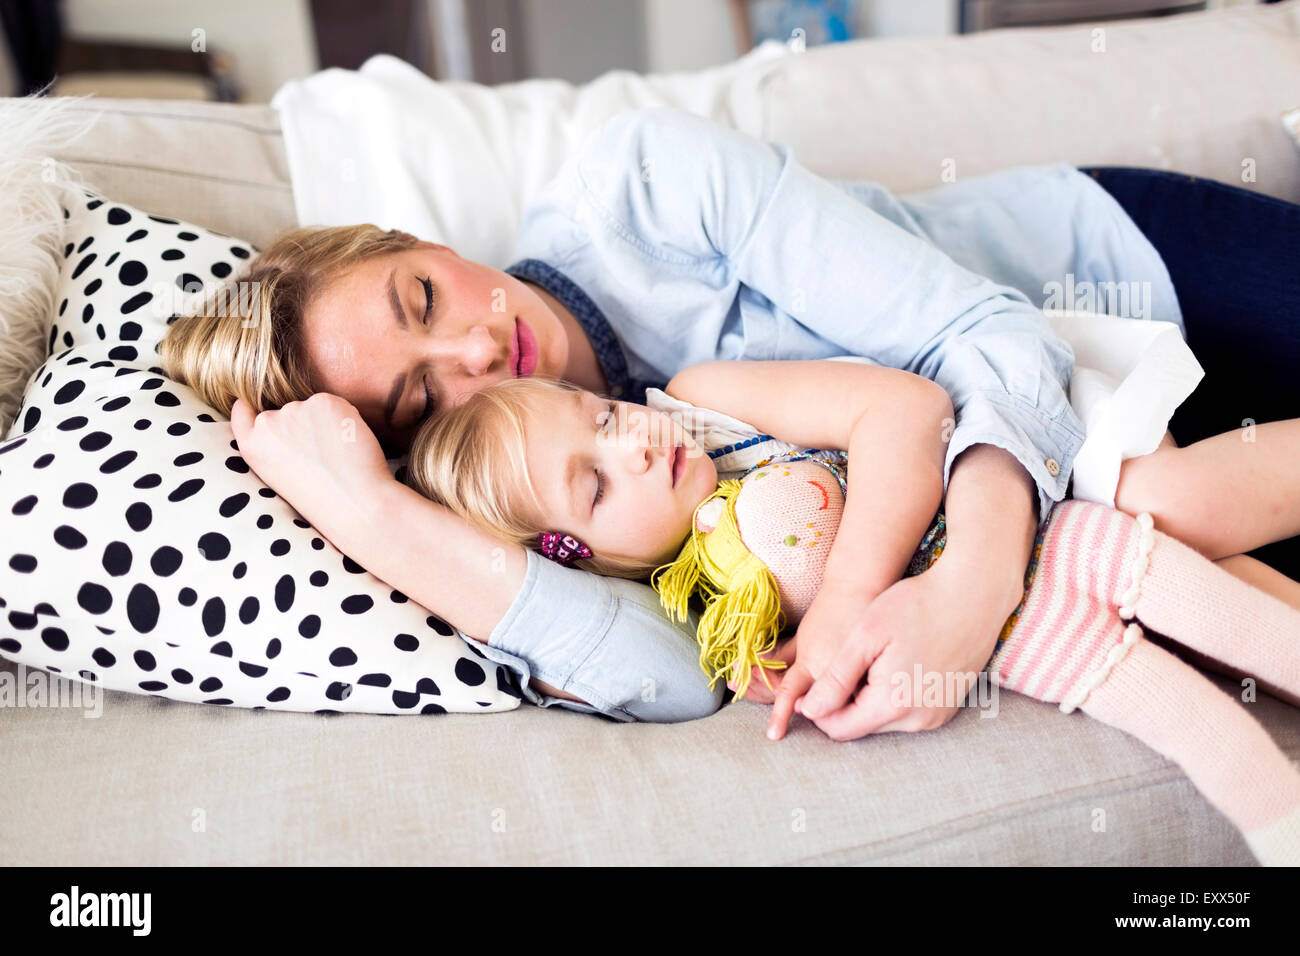 Mother and daughter (2-3) sleeping on sofa - Stock Image